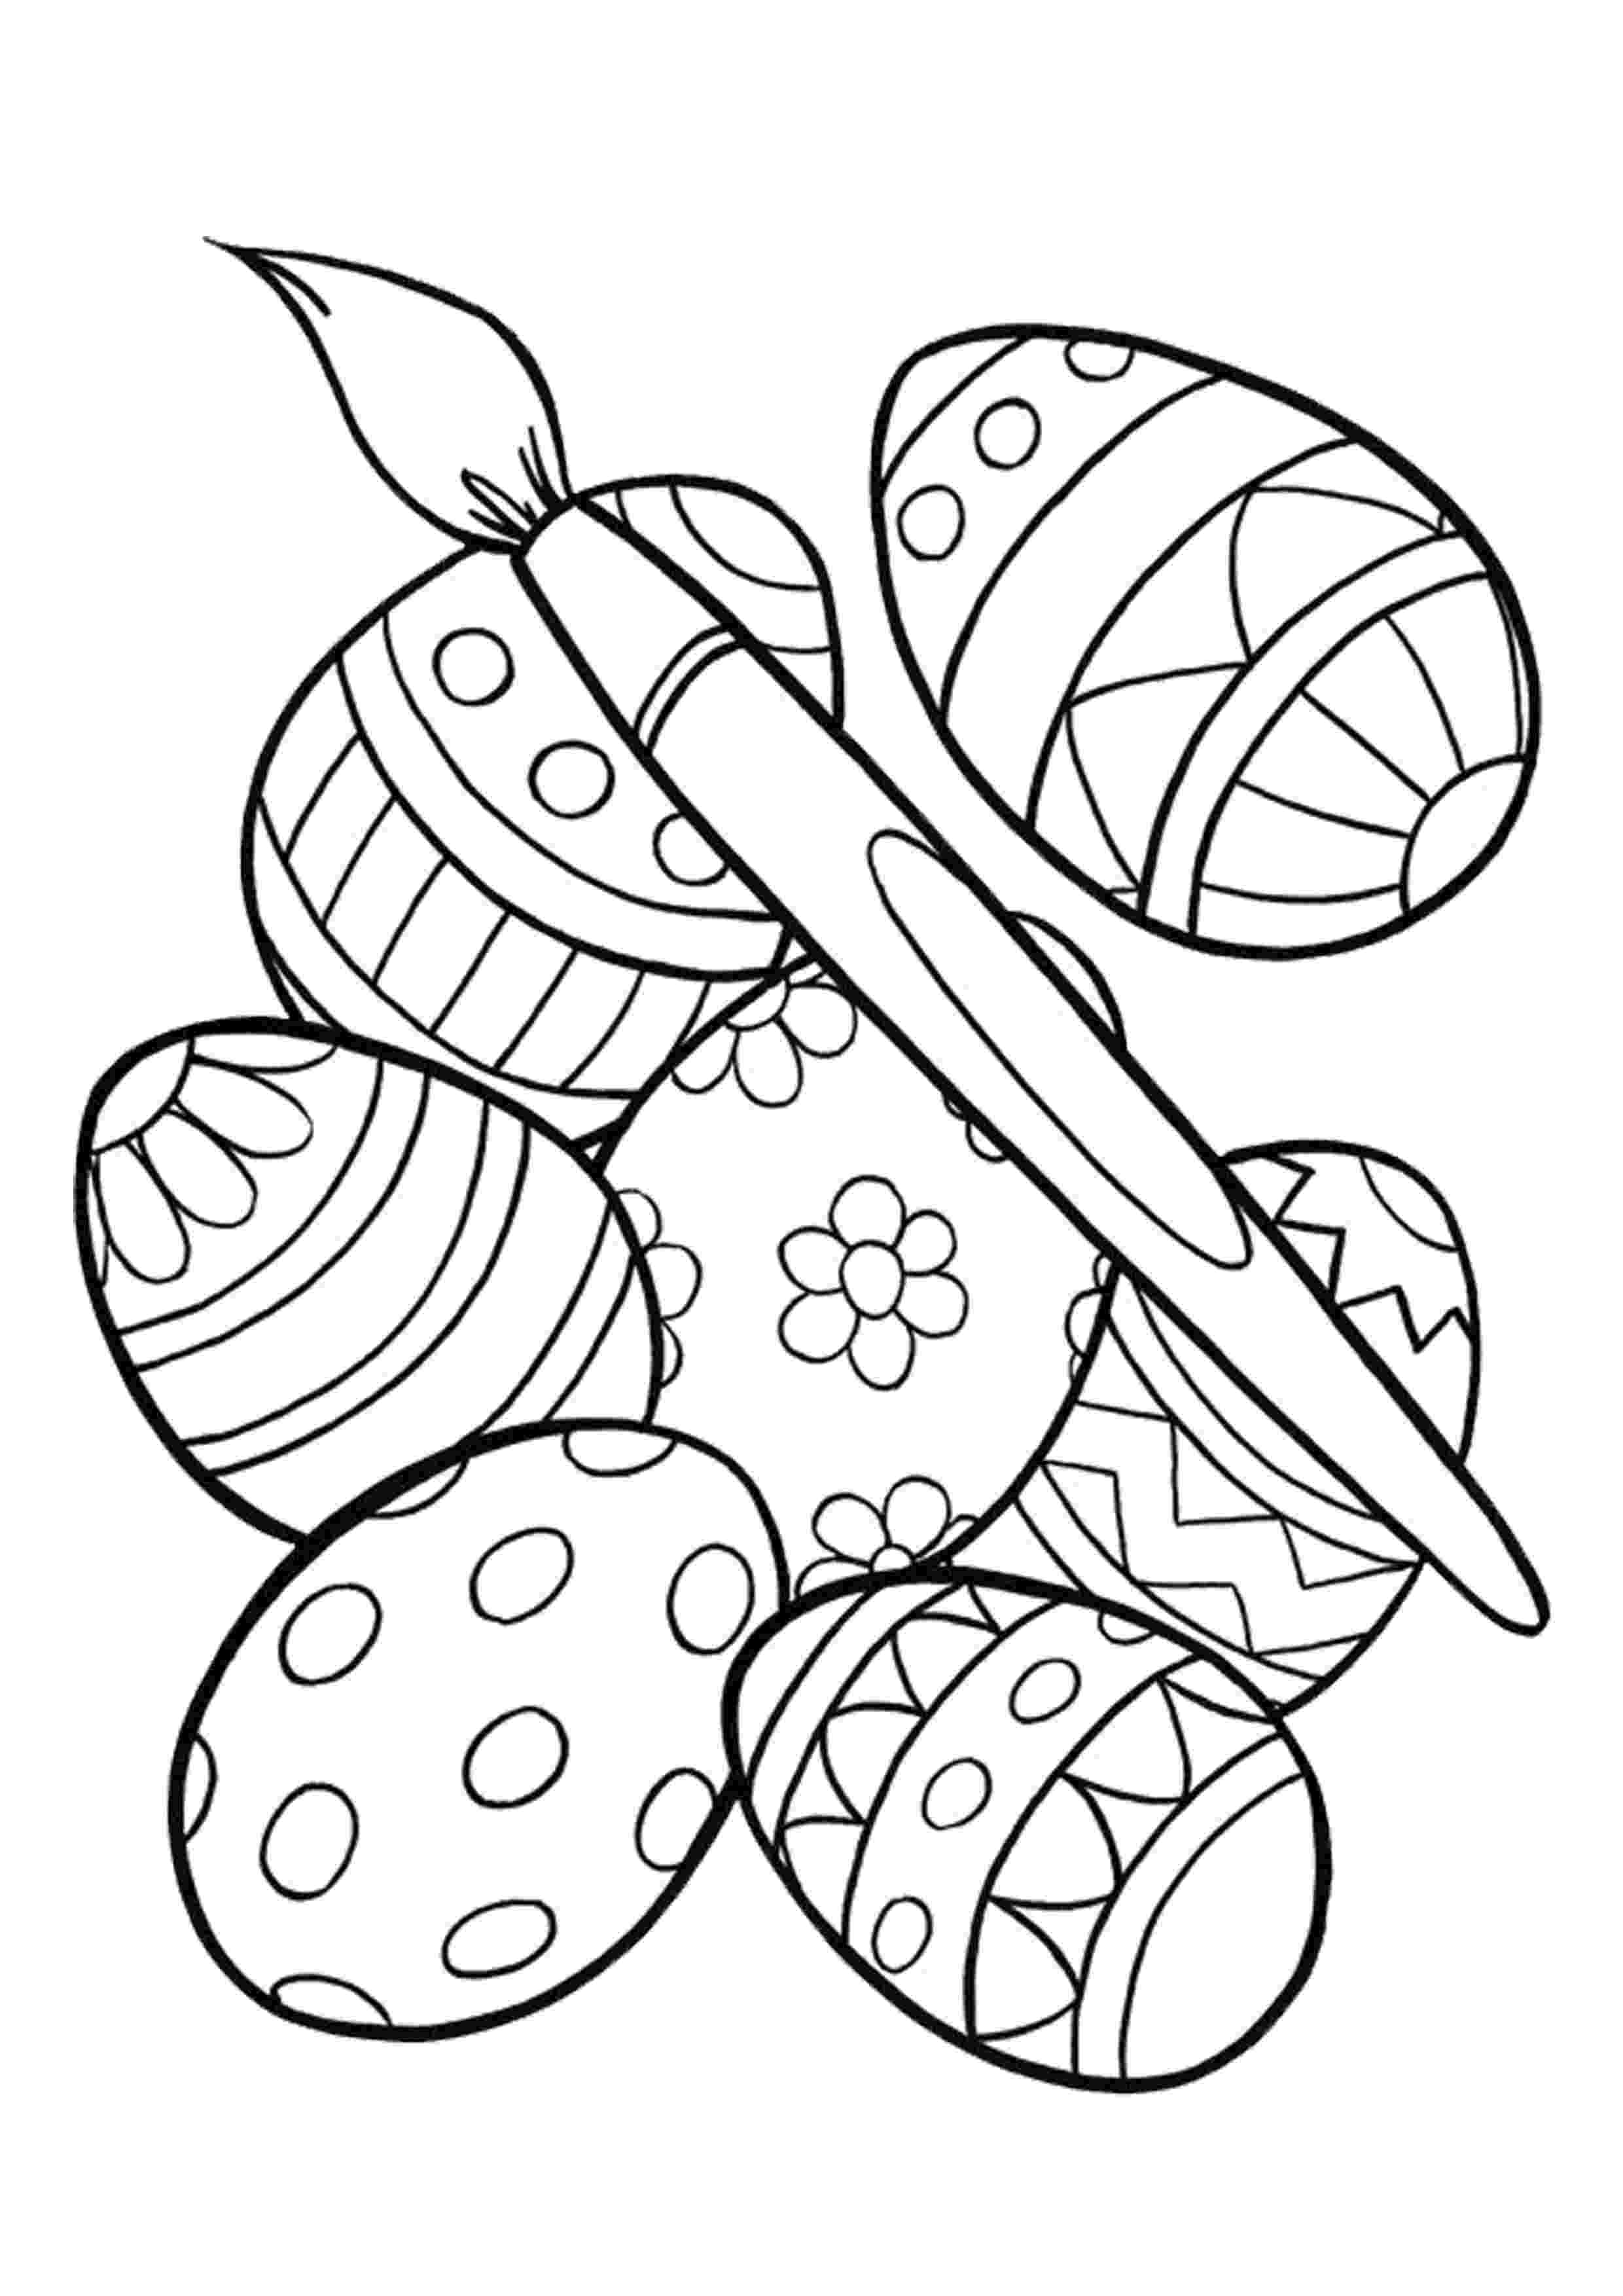 colouring picture easter egg easter egg to color in kindergarten 2016 17 easter egg colouring picture easter egg